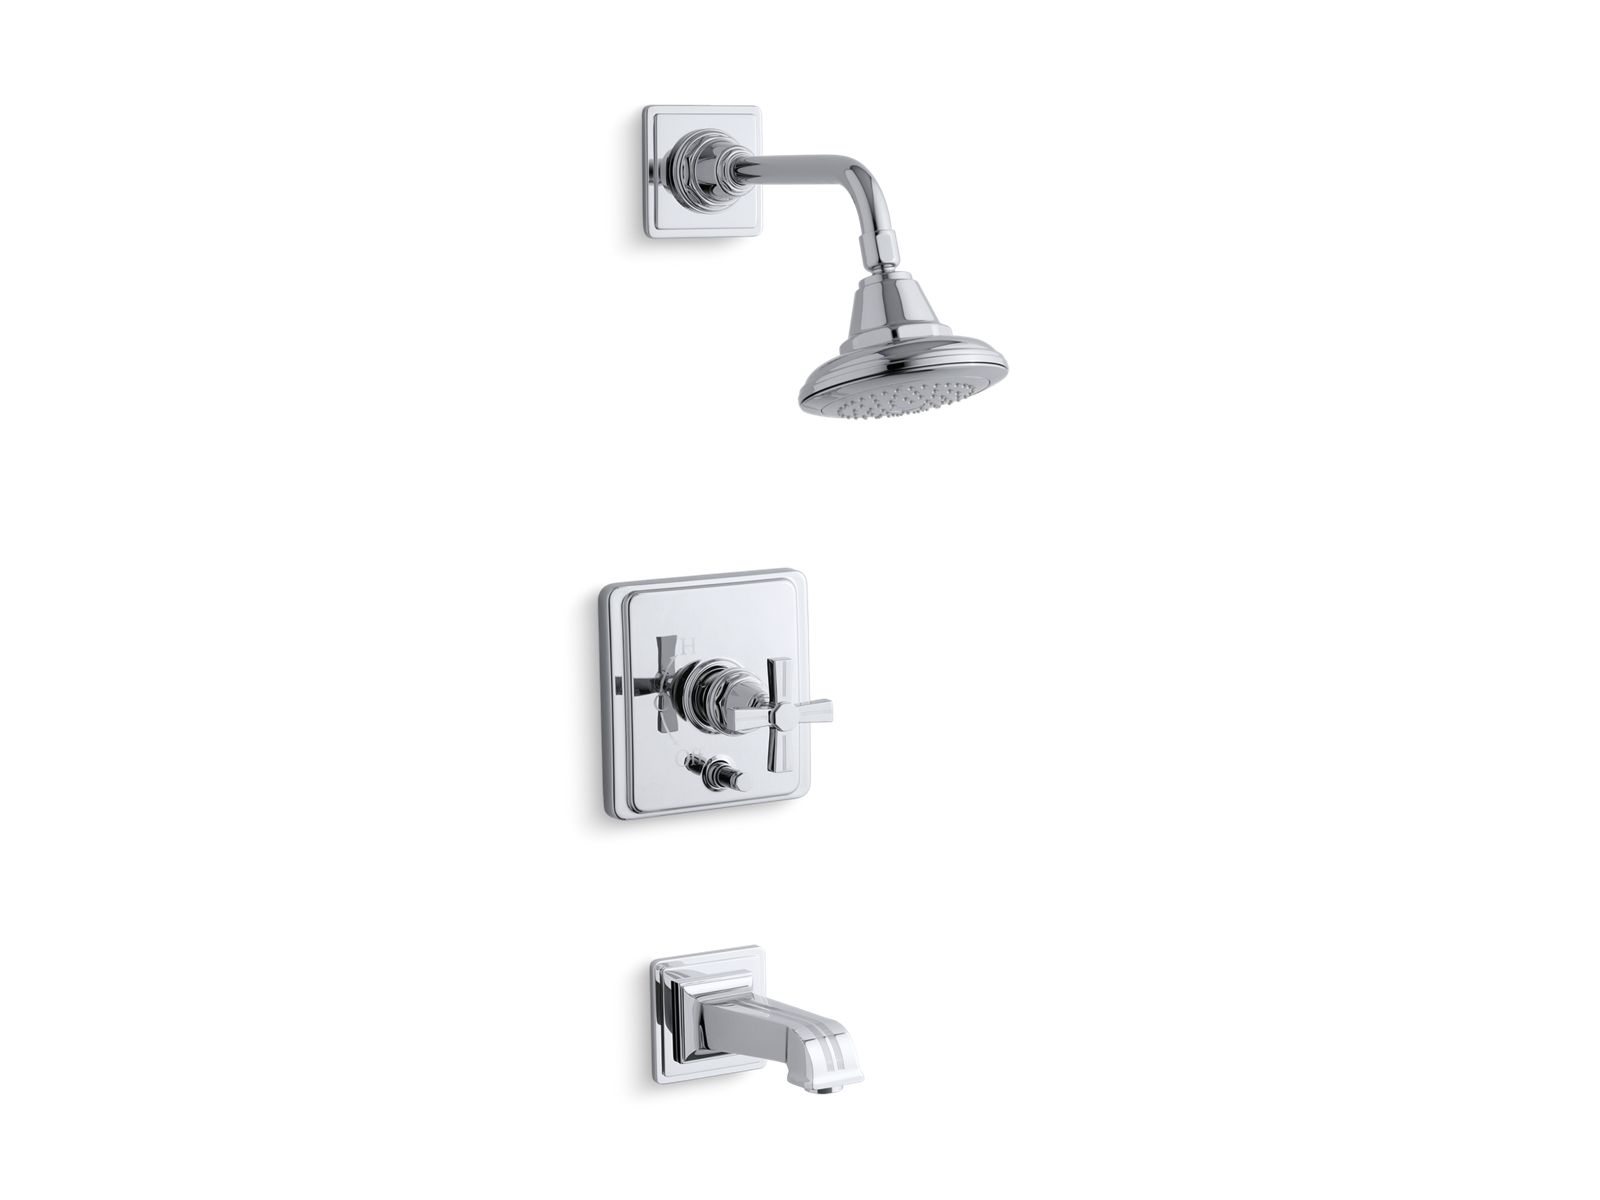 K T13133 3B | Pinstripe Rite Temp Bath And Shower Faucet Trim | KOHLER